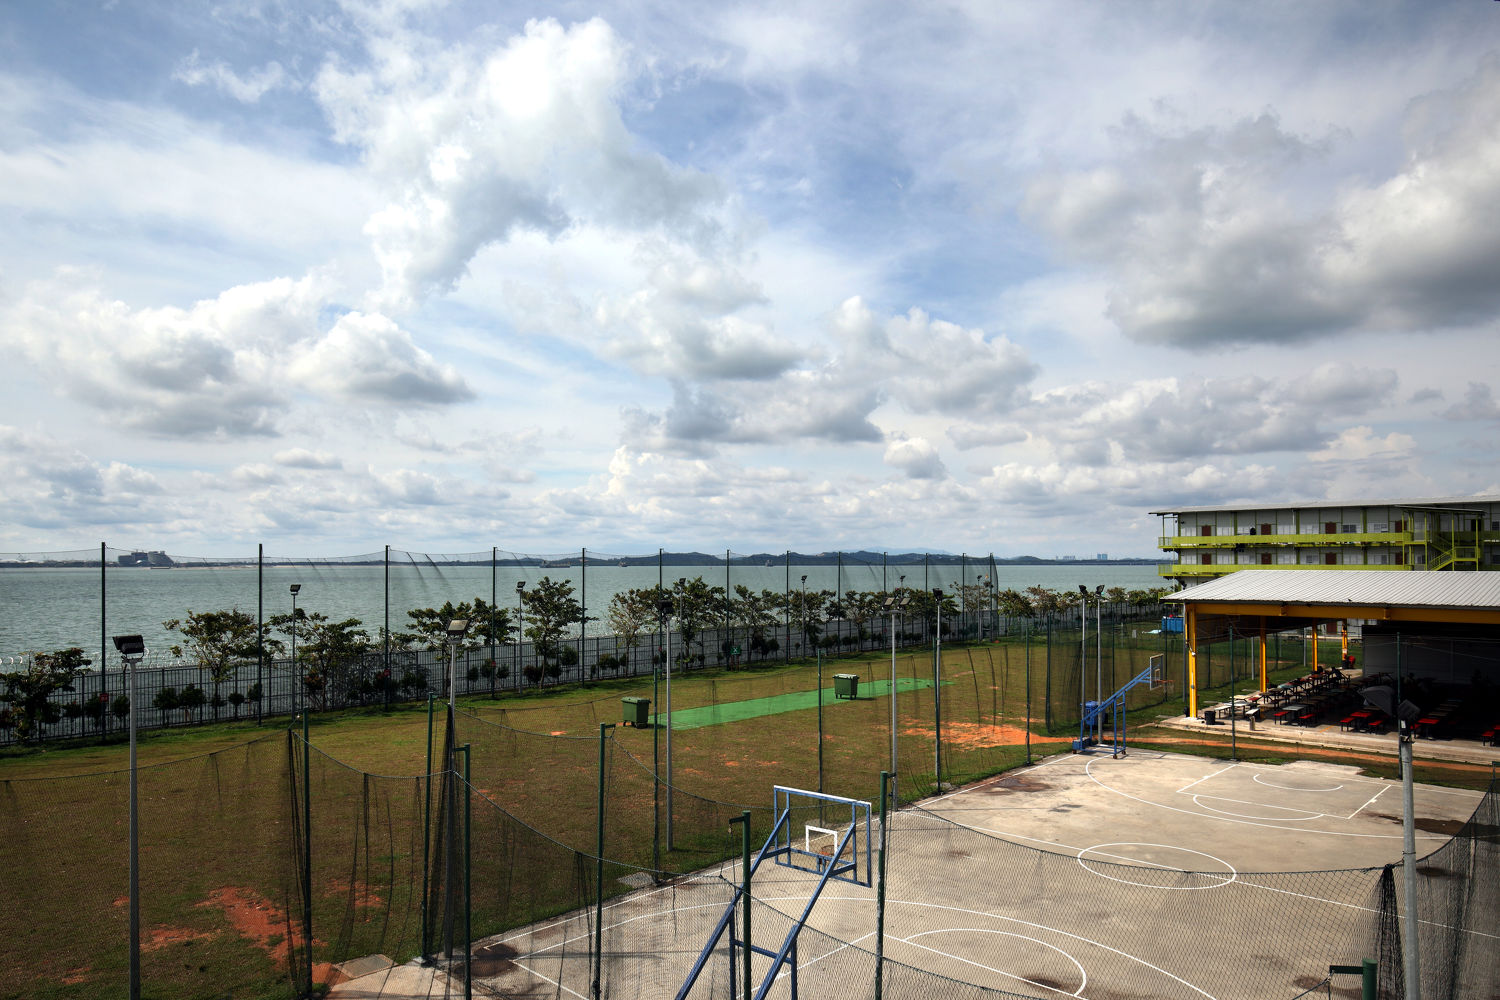 Tuas View has minimarts, dedicated cooking areas, central laundry and recreational facilities such as outdoor games courts and a gym